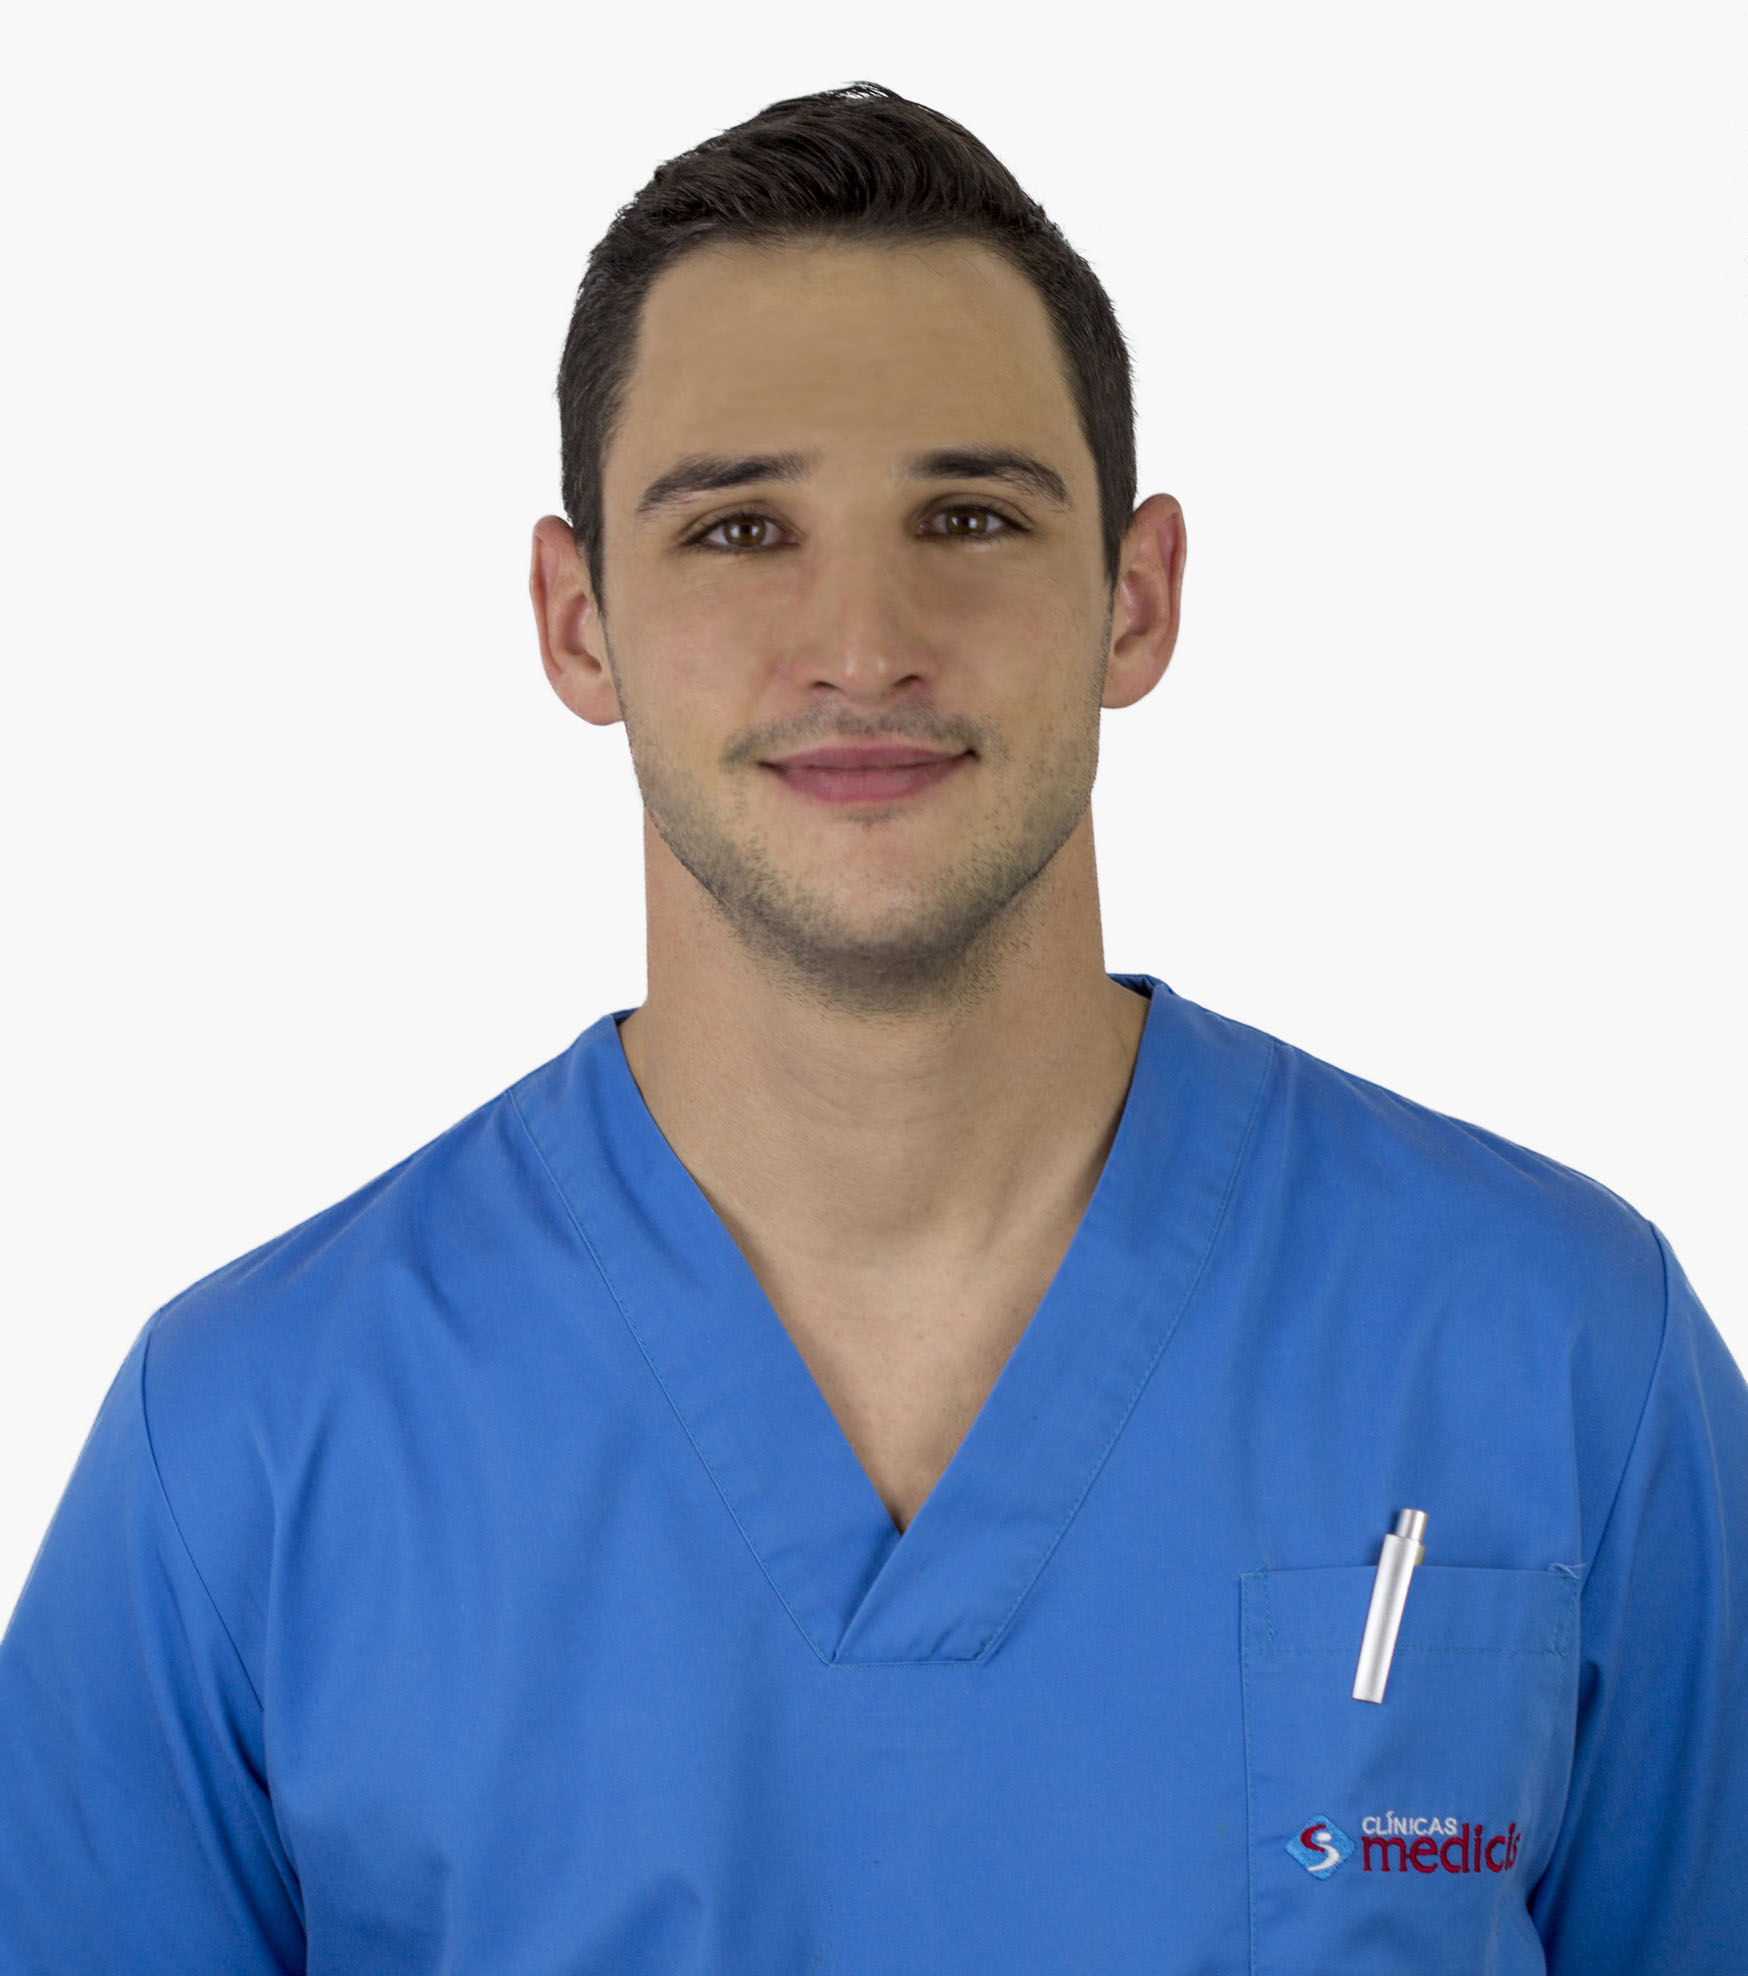 Dr. Diogo Afonso